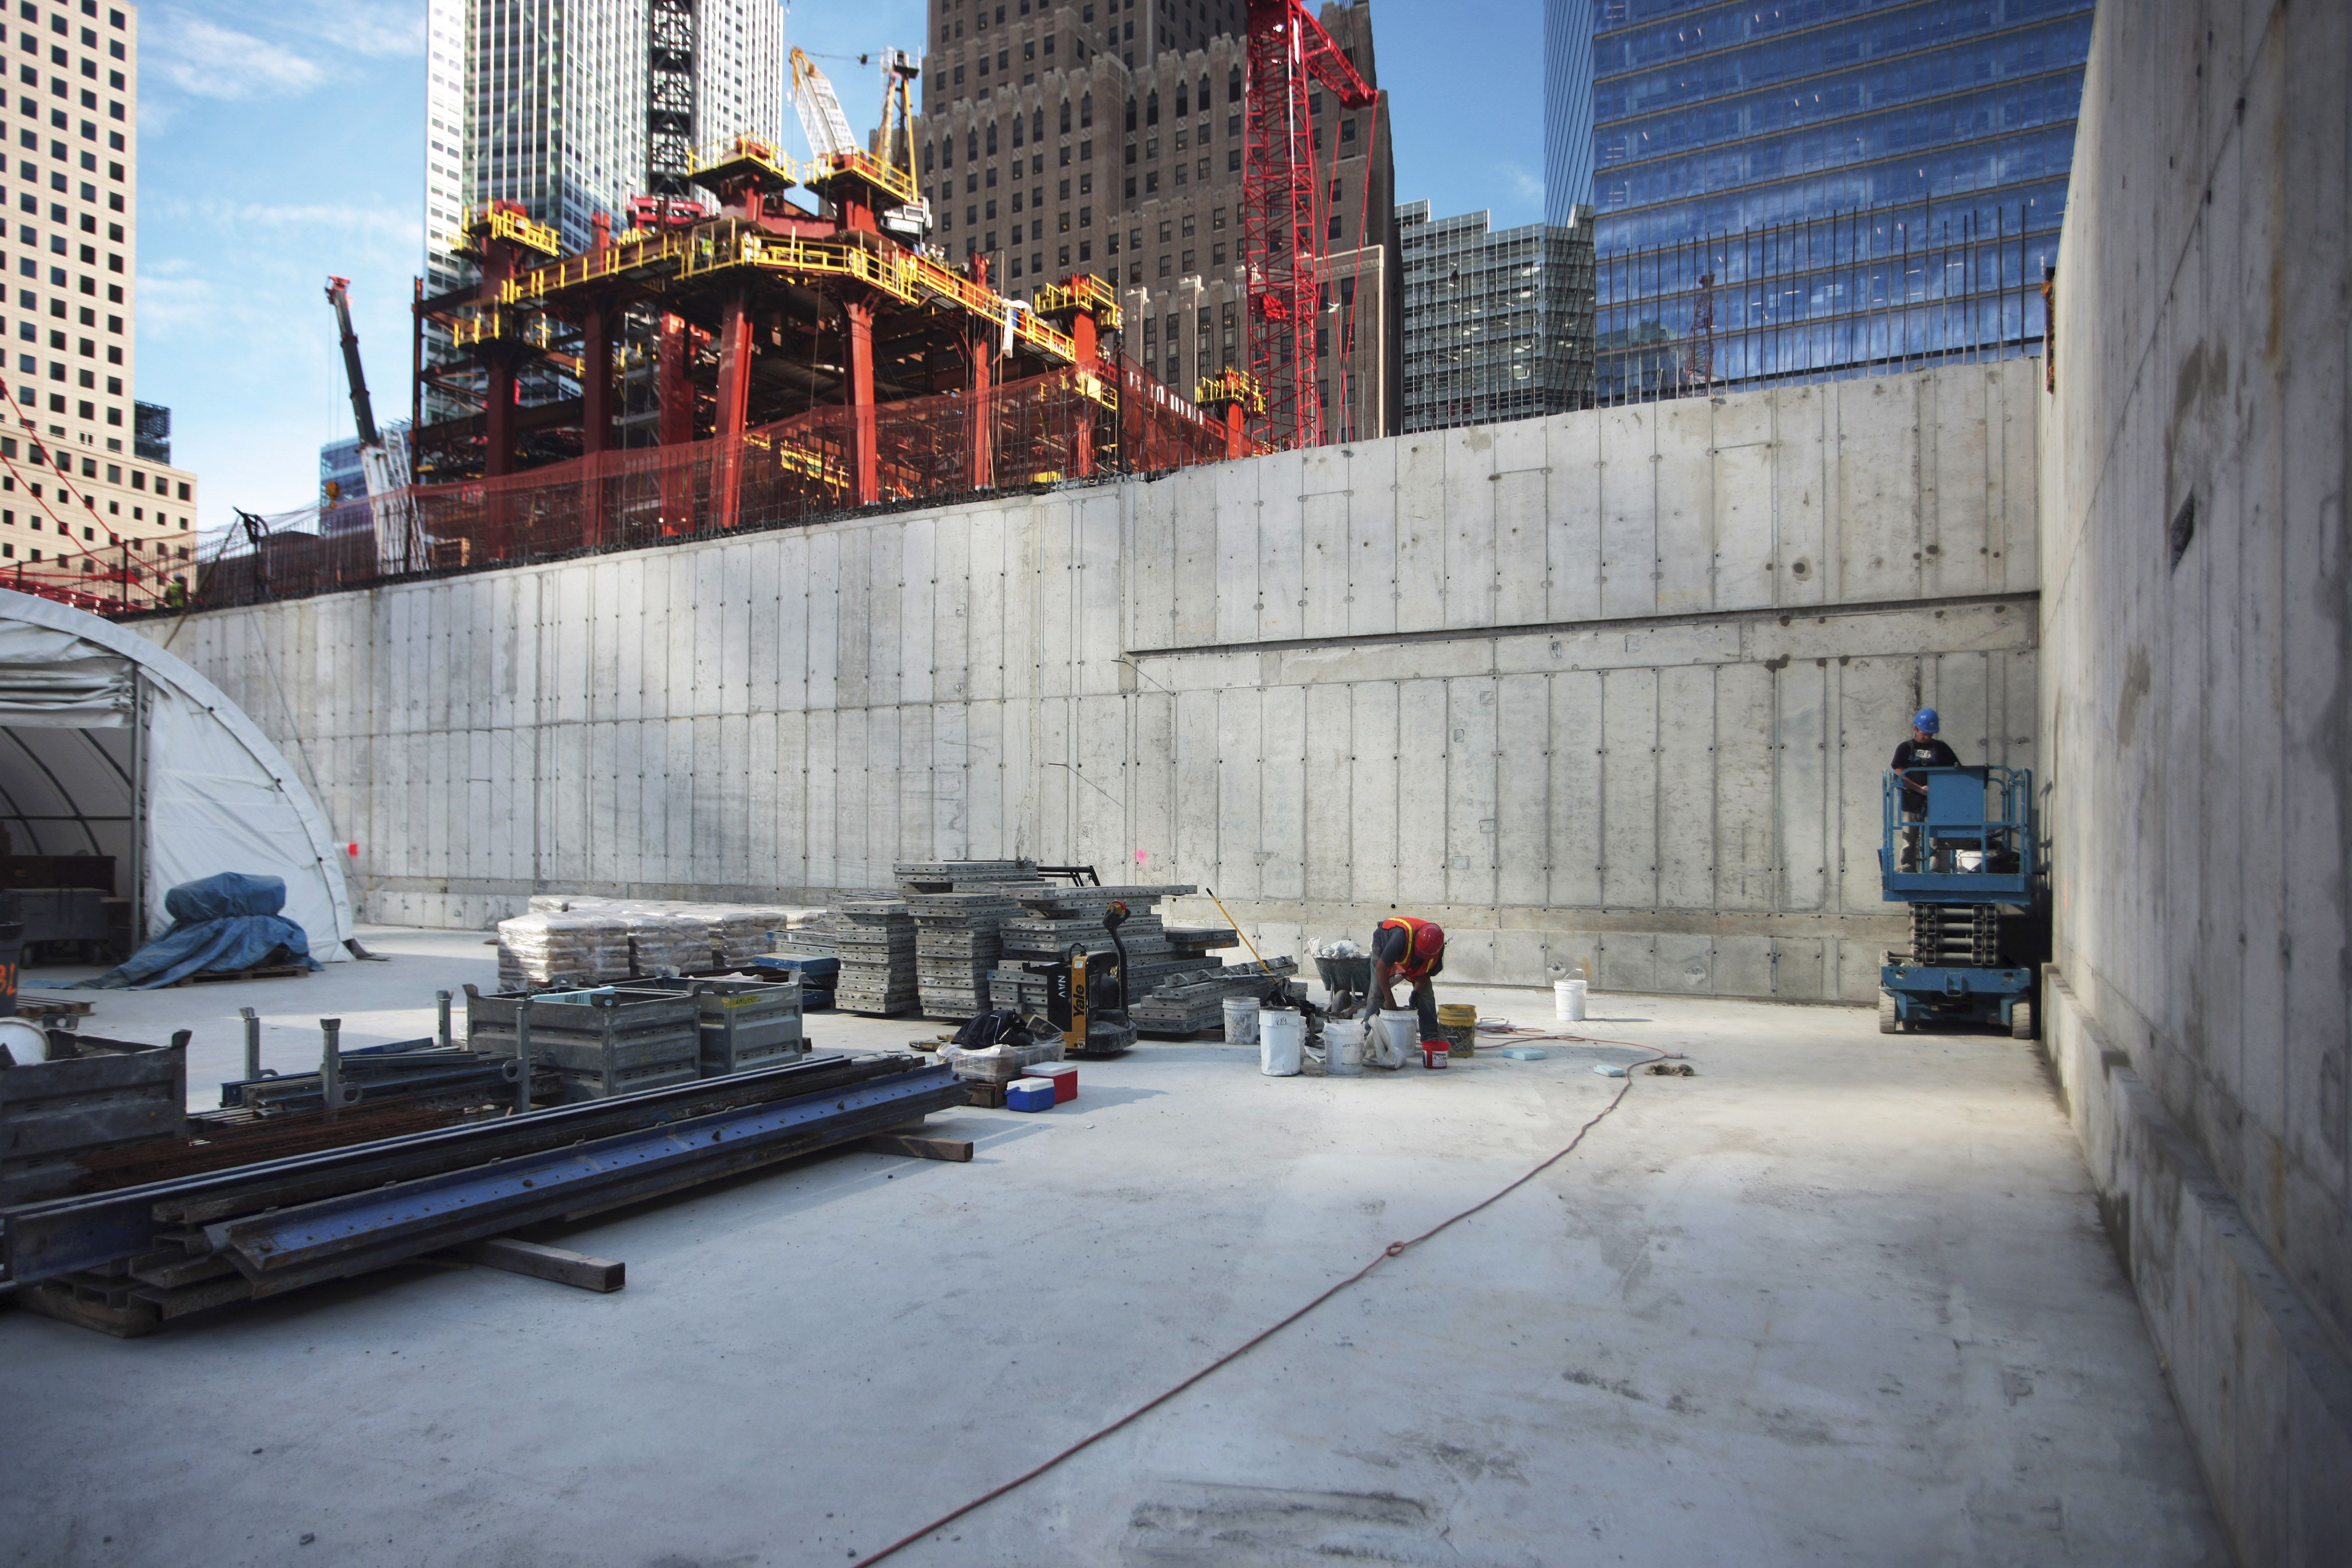 close up inside sunken reflecting pool with skyscraper being constructed in background